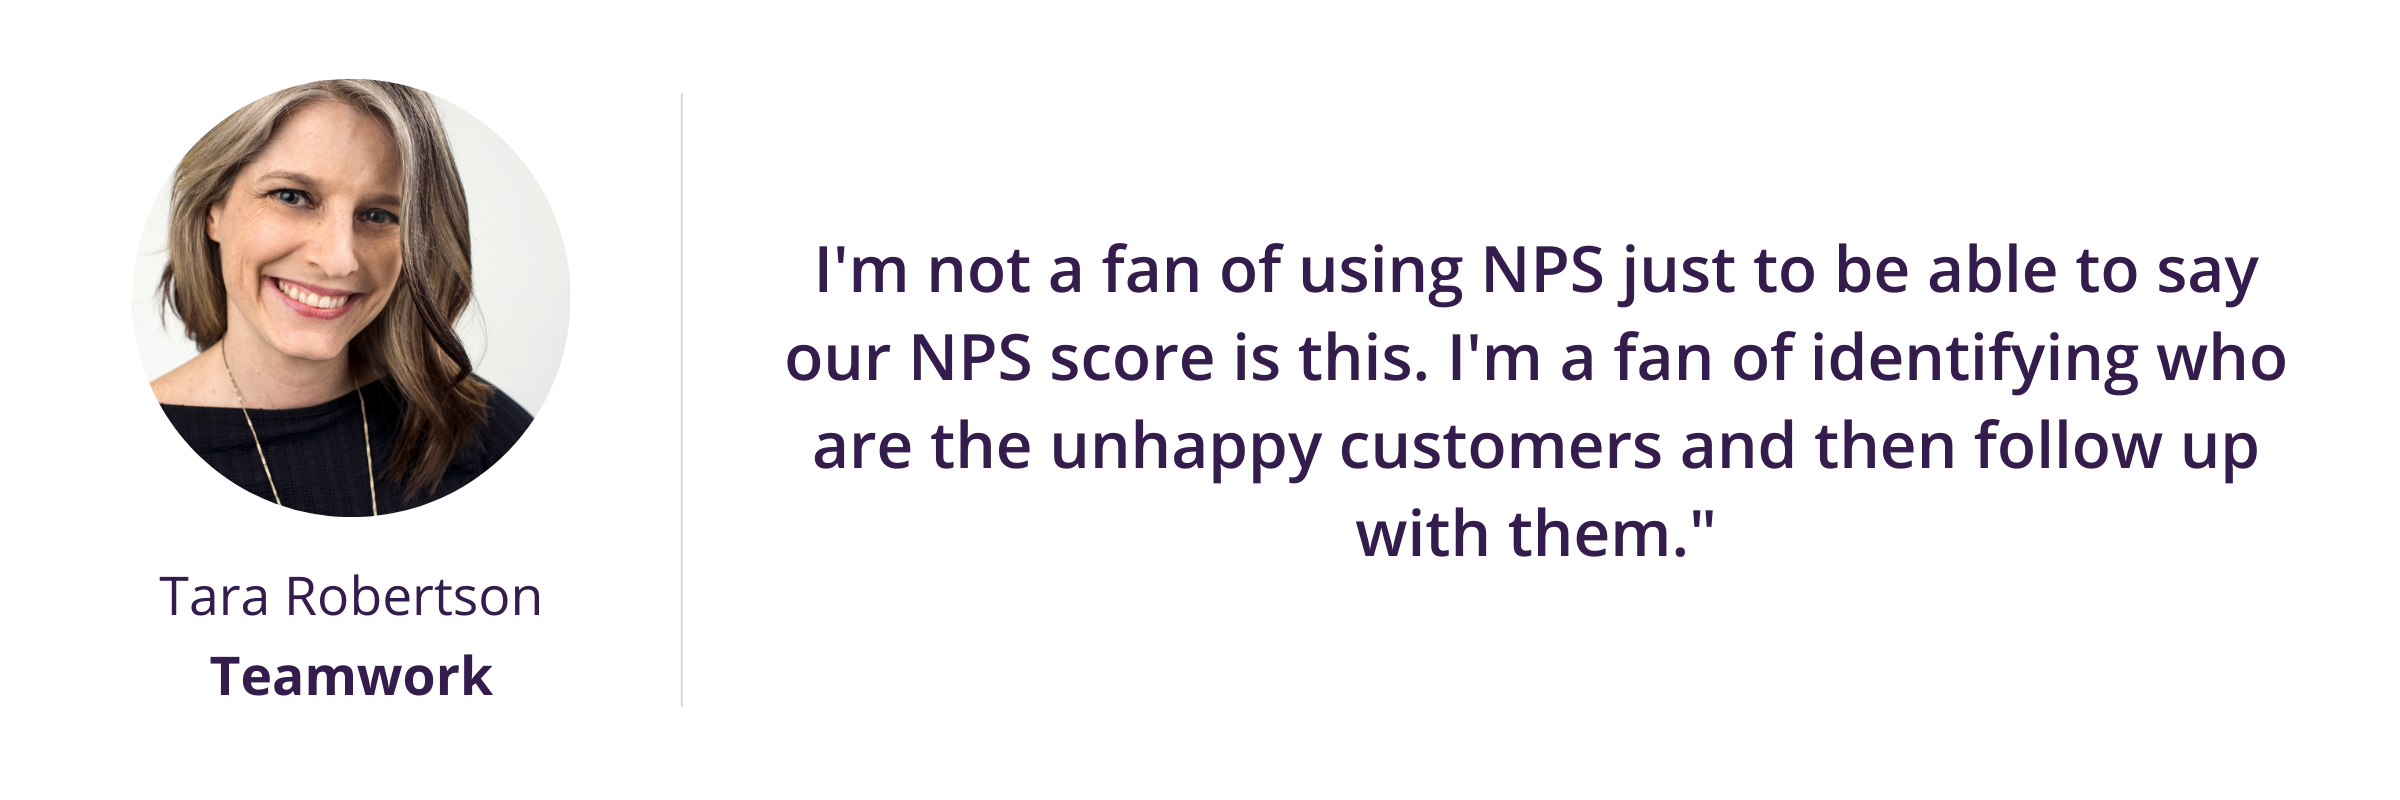 """I'm not a fan of using NPS just to be able to say our NPS score is this. I'm a fan of identifying who are the unhappy customers and then follow up with them."""""""